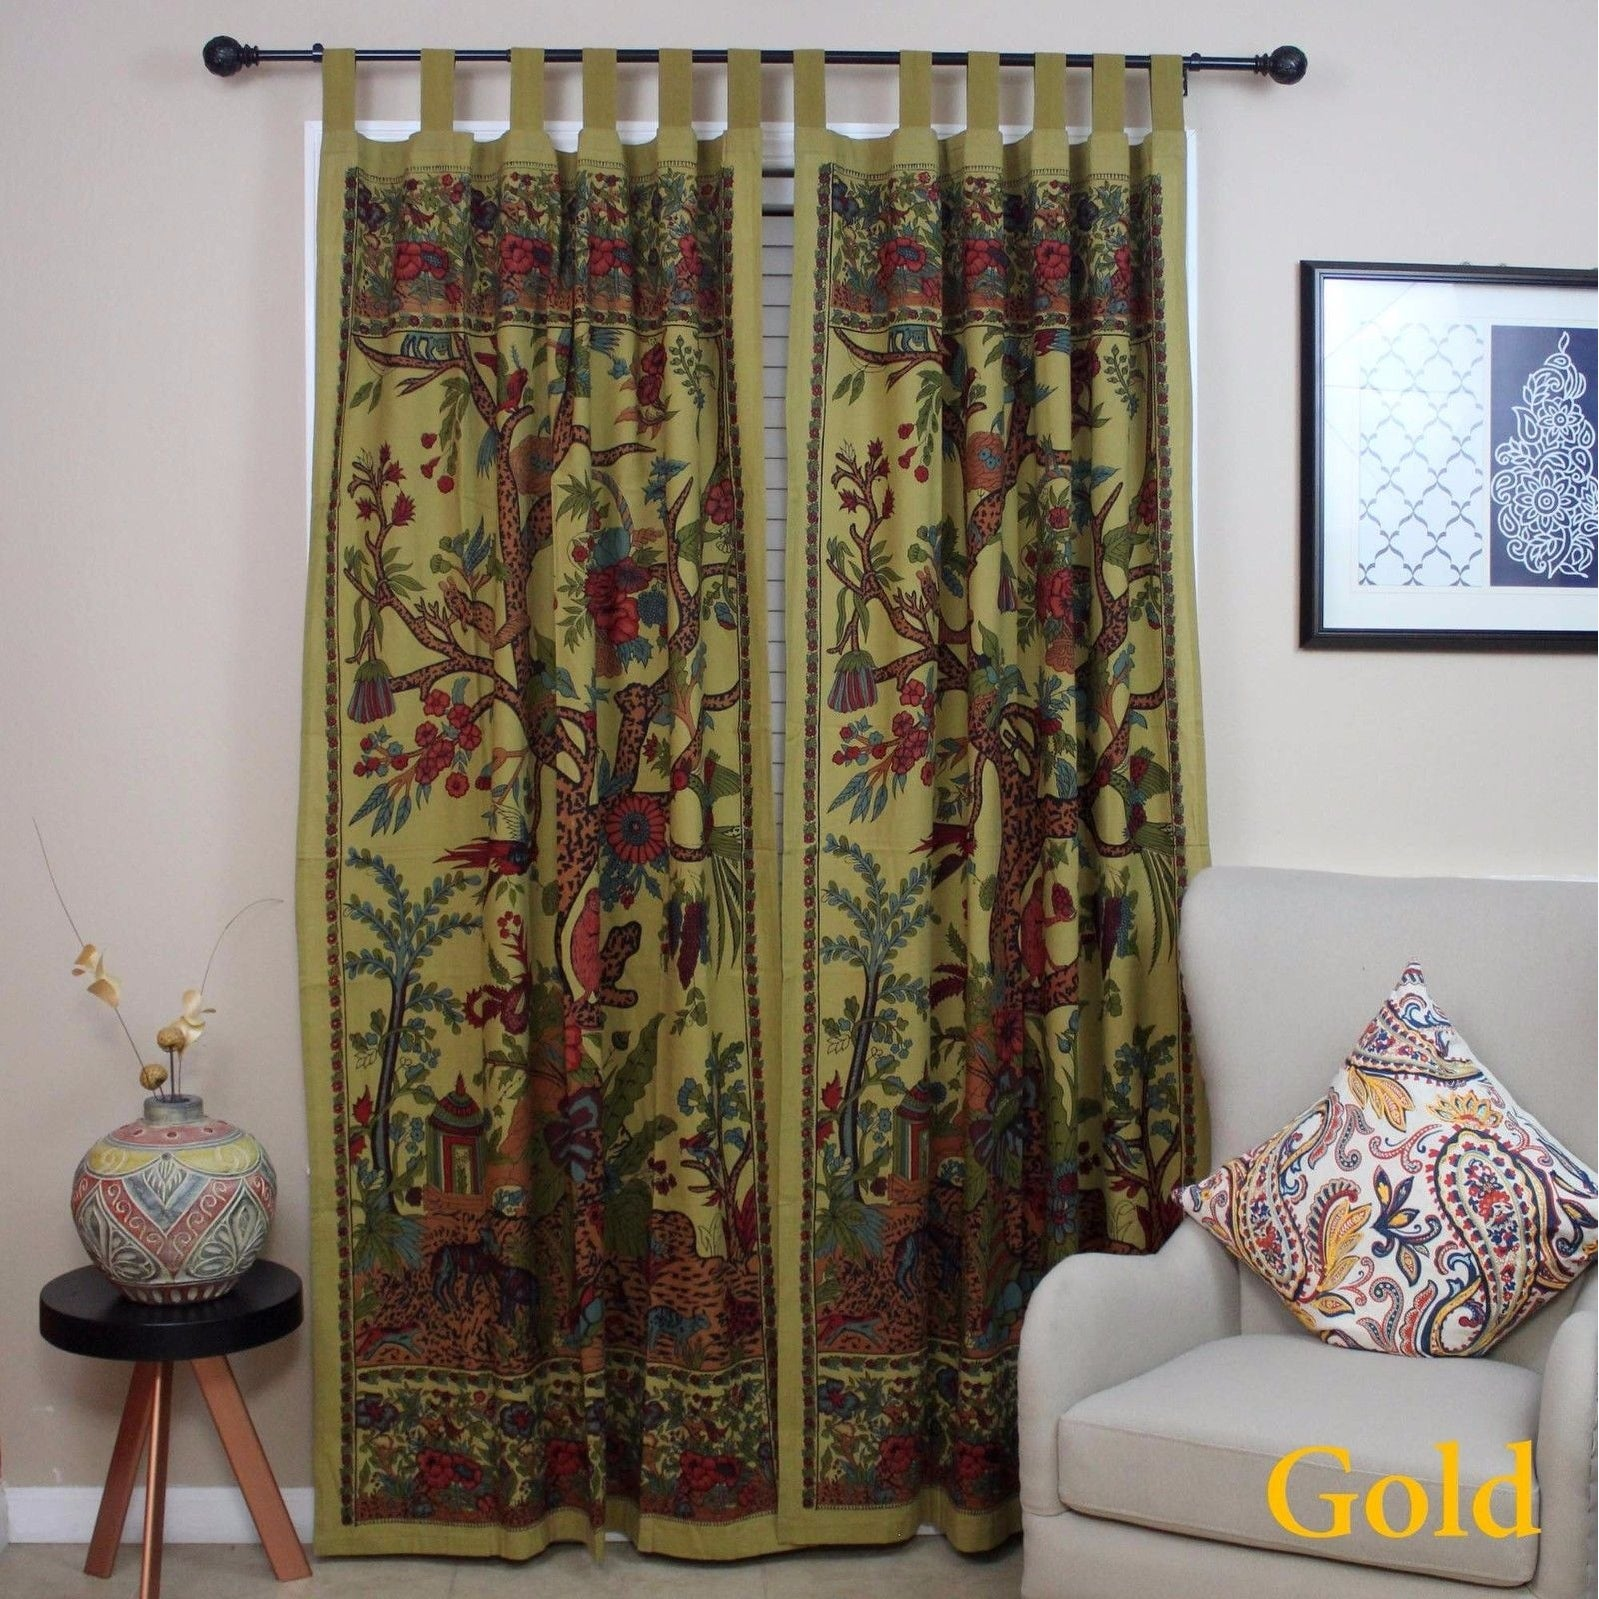 Handmade 100% Cotton Tree of Life Tab Top Curtain Drape Panel - 8 Color options - Black Gold Blue Purple Tan - 44 x 88 inches - Thumbnail 29